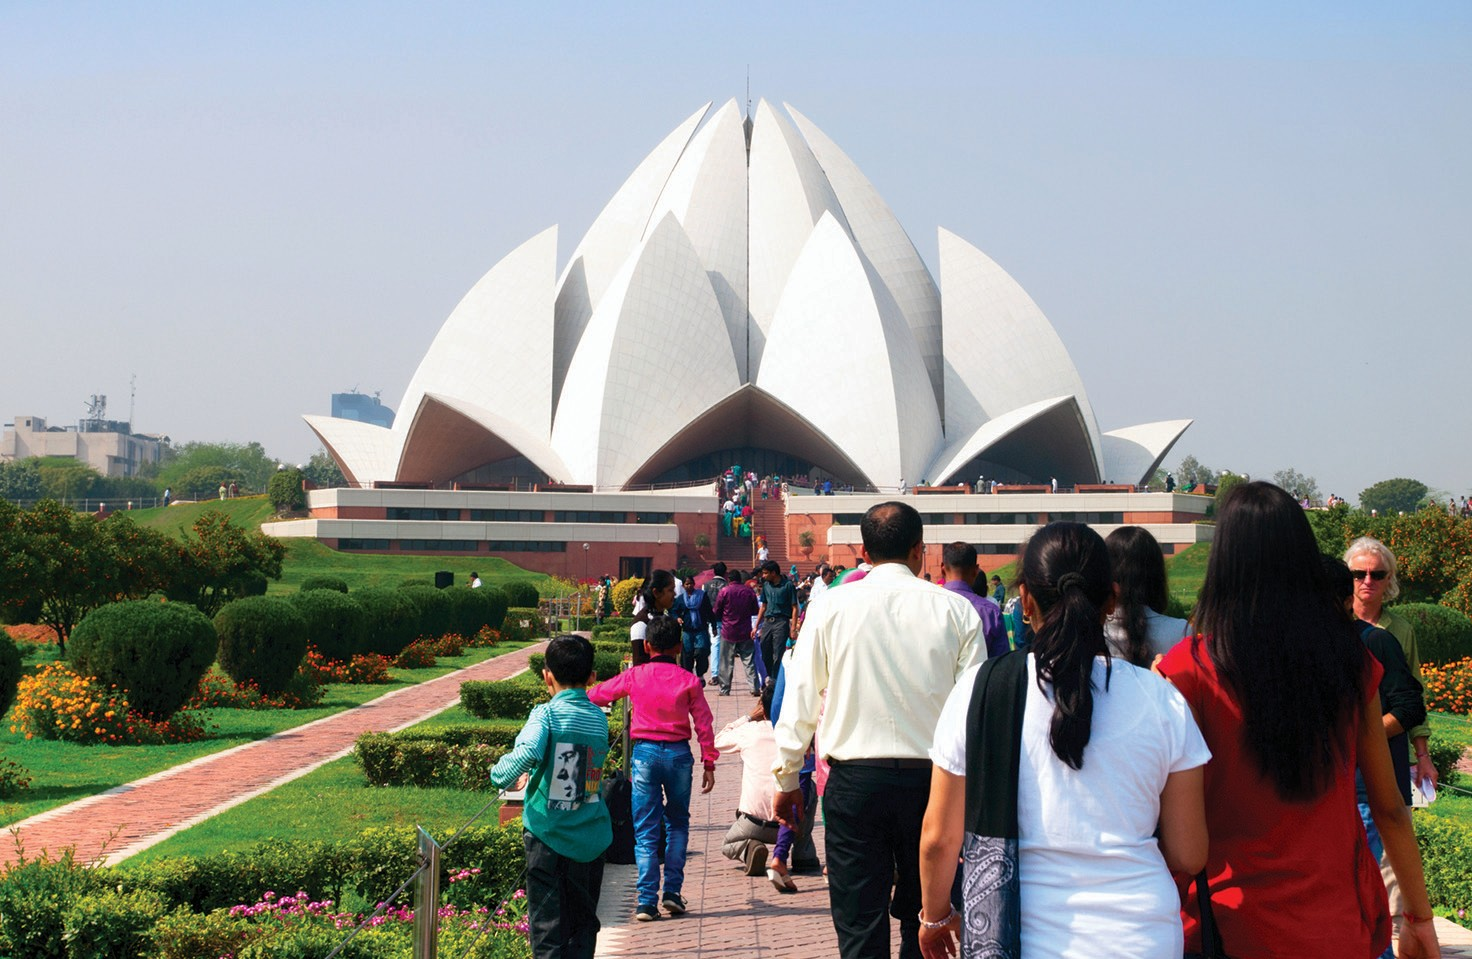 OPEN TO ALL—People visit the Lotus Temple, a Bahá'í house of worship completed in 1986, in New Delhi, India. This month the local Bahá'í community will honor the founder of the faith with two events open to the public.